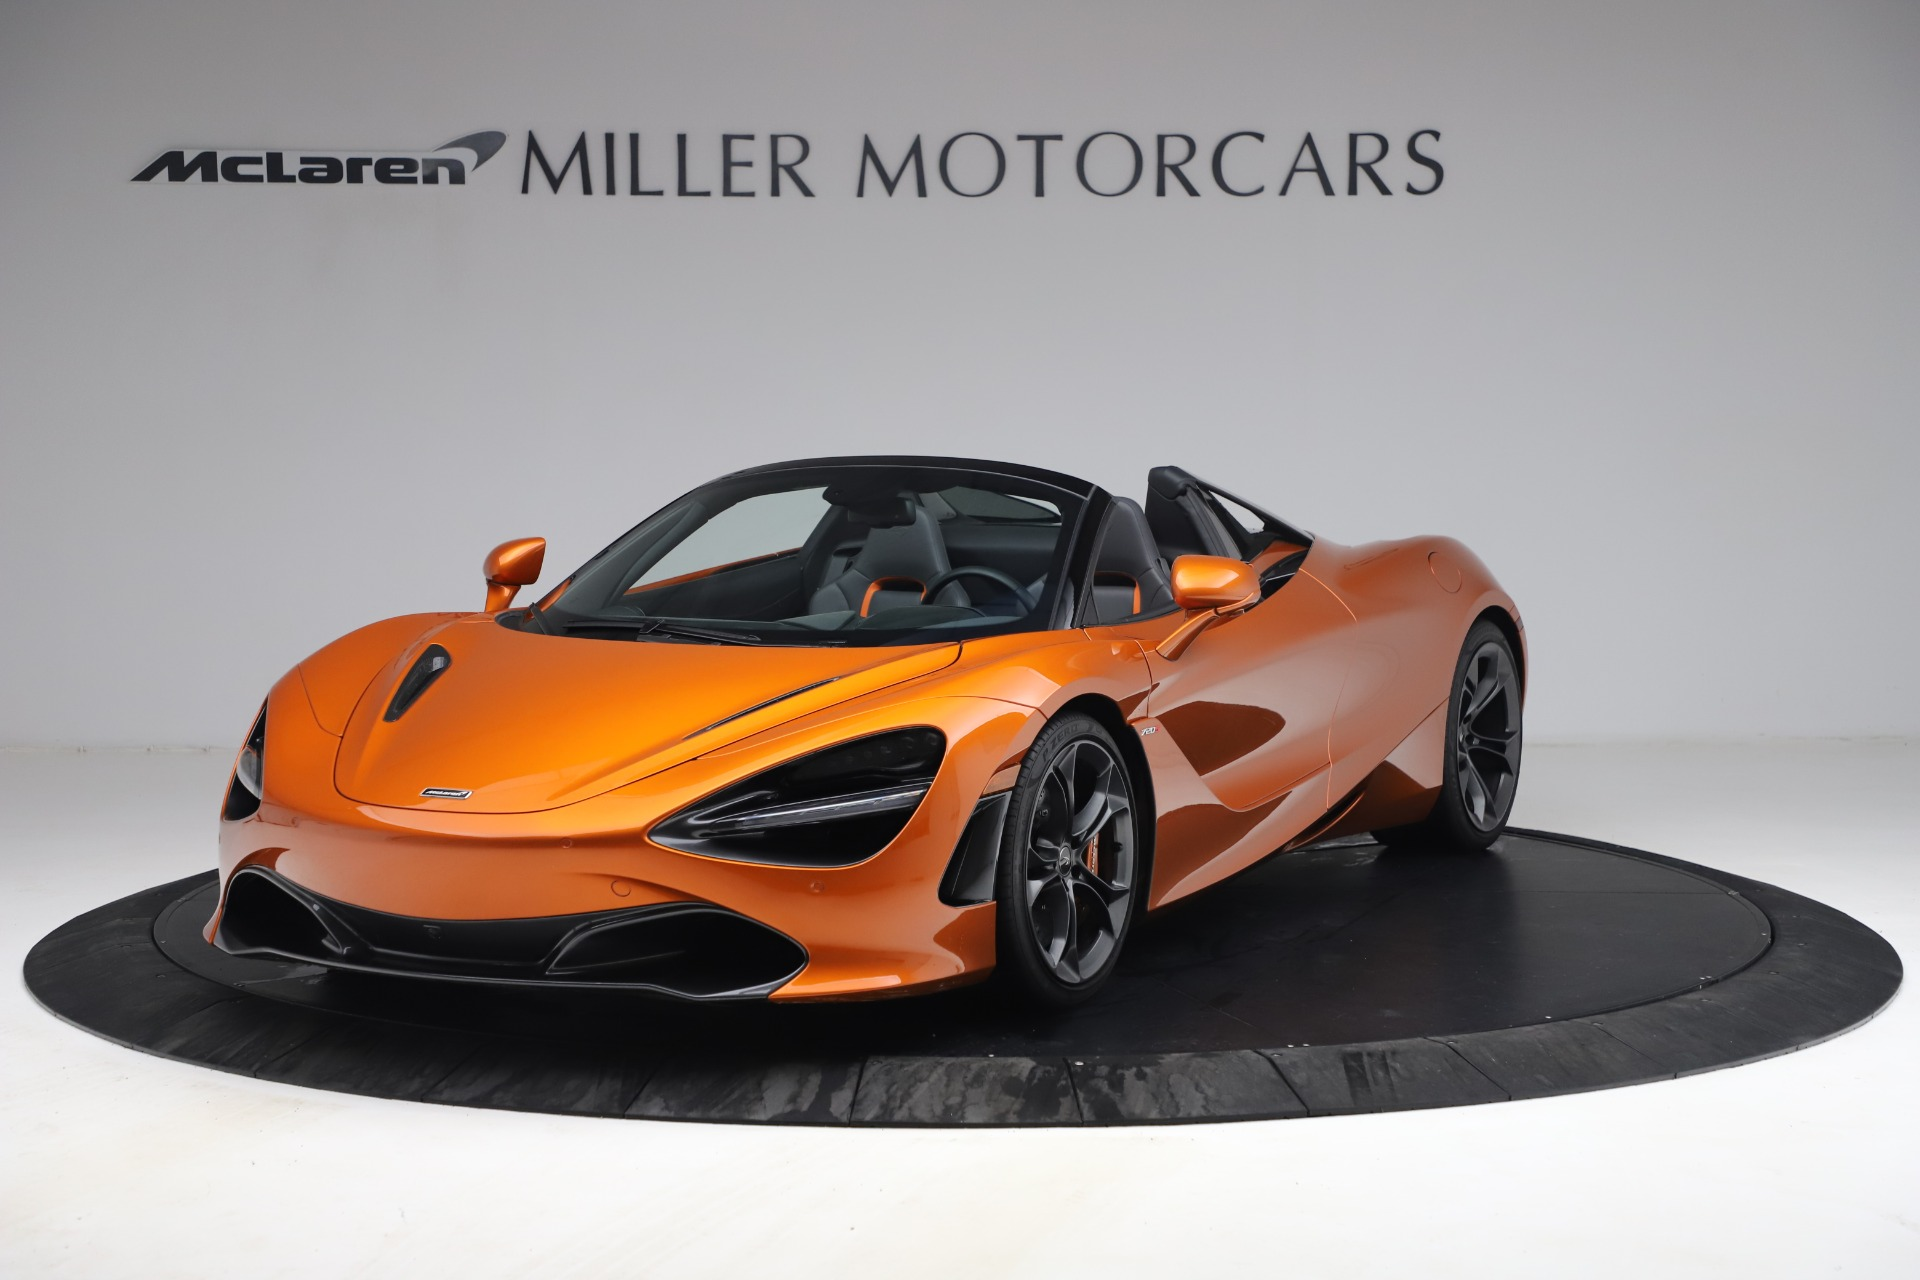 Used 2020 McLaren 720S Spider for sale $335,900 at Pagani of Greenwich in Greenwich CT 06830 1